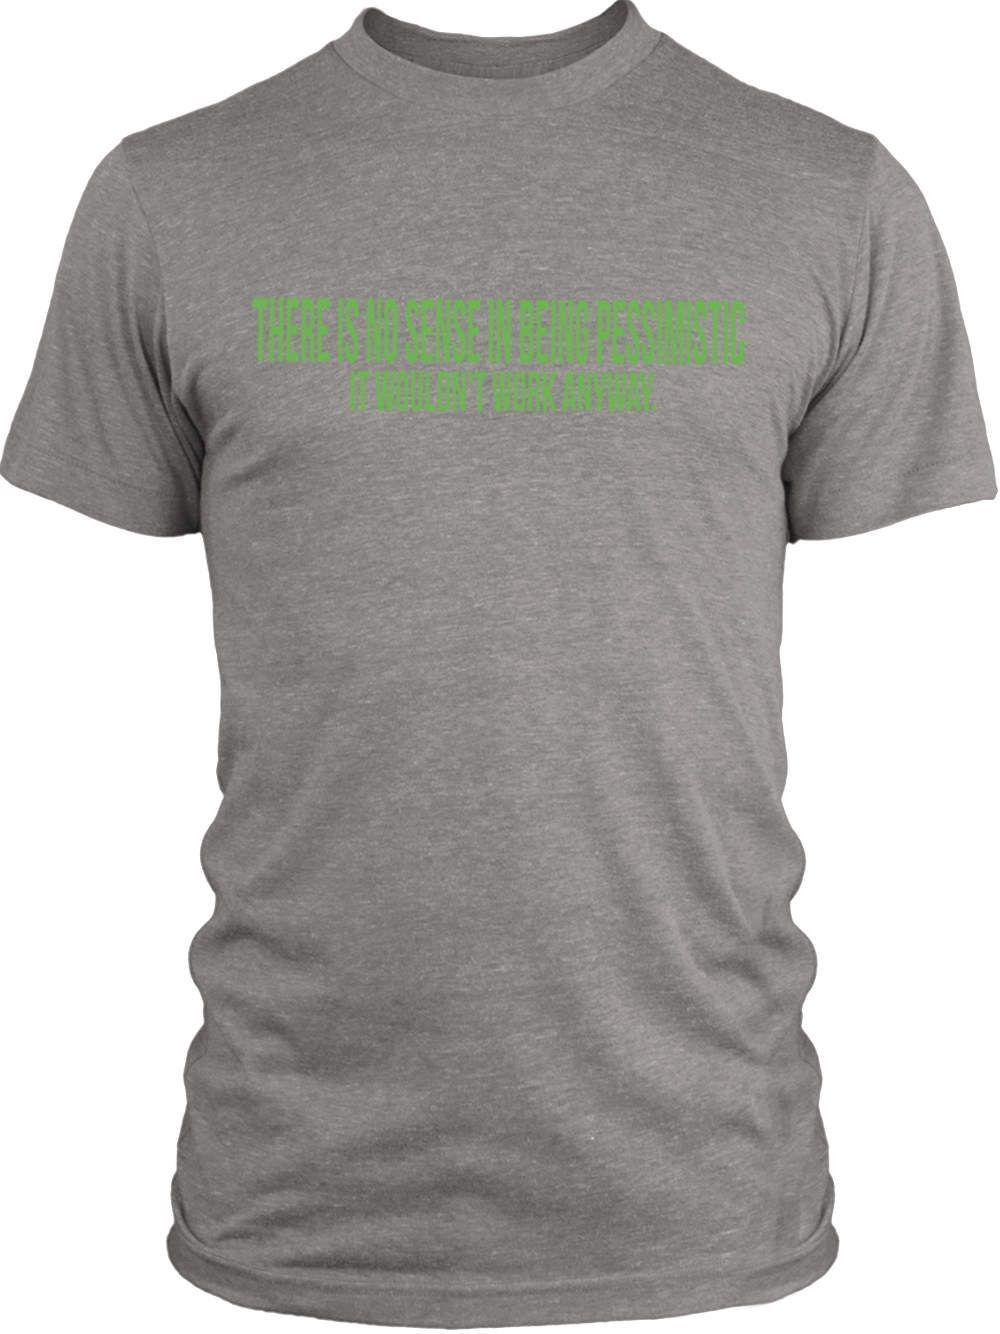 Big Texas There Is No Sense in Being Pessimistic (Green) Vintage Tri-Blend T-Shirt